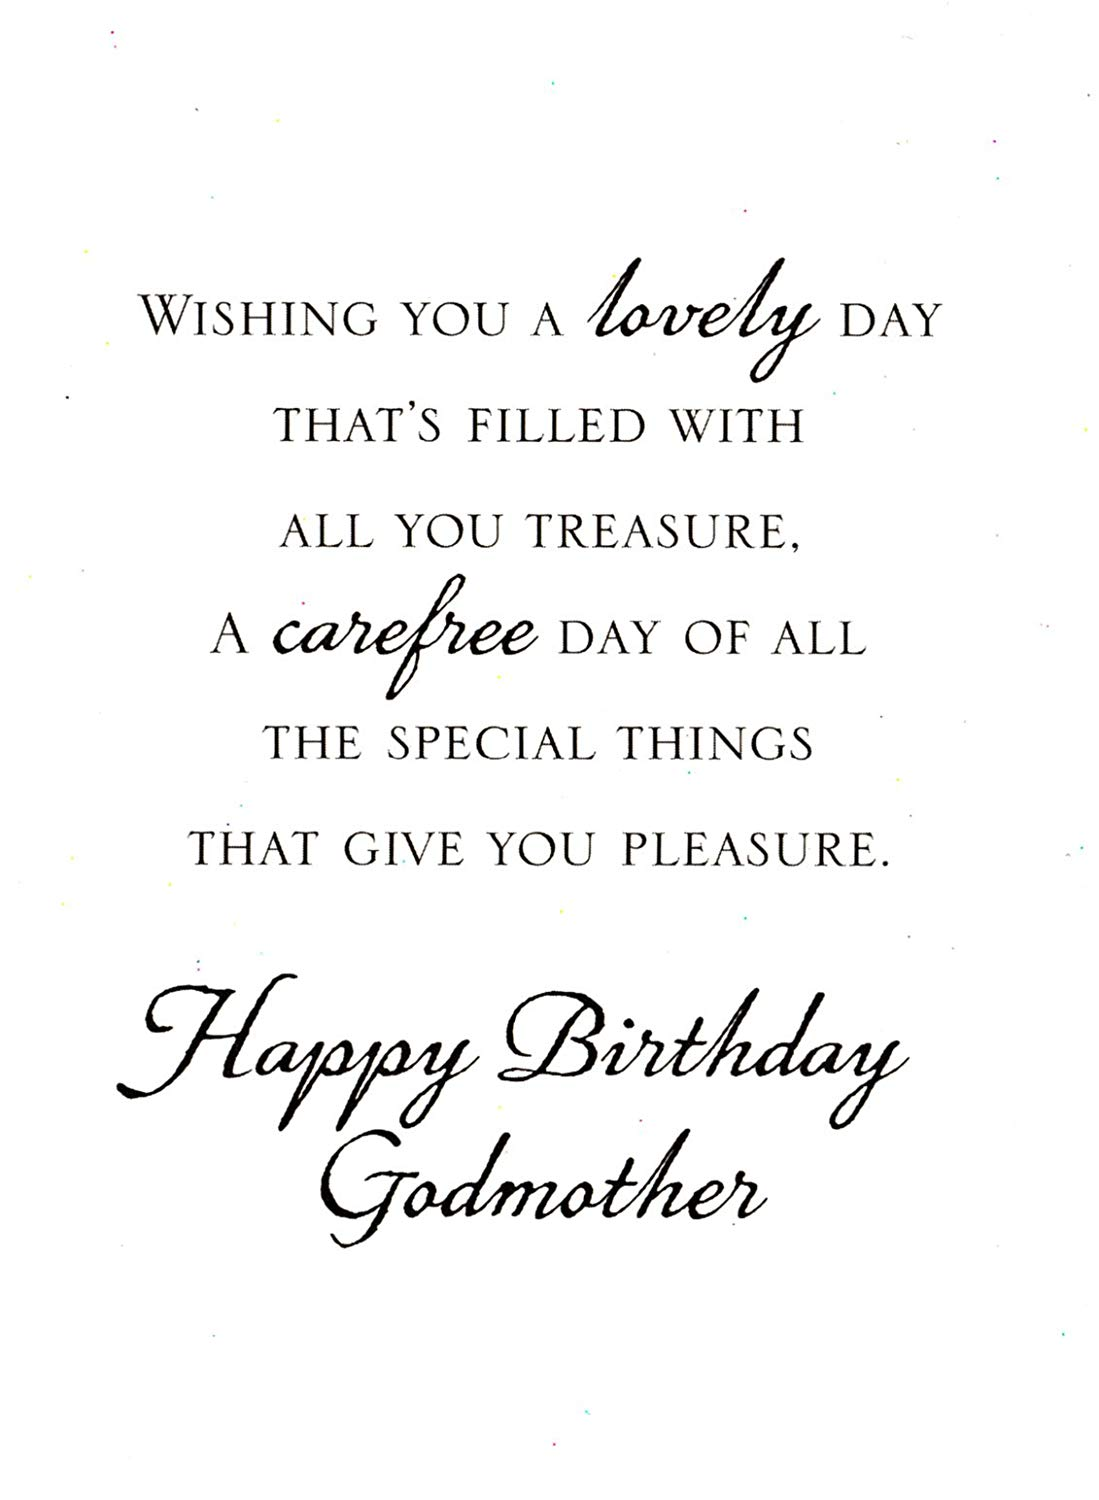 Wishing you a lovely day Godmother happy birthday